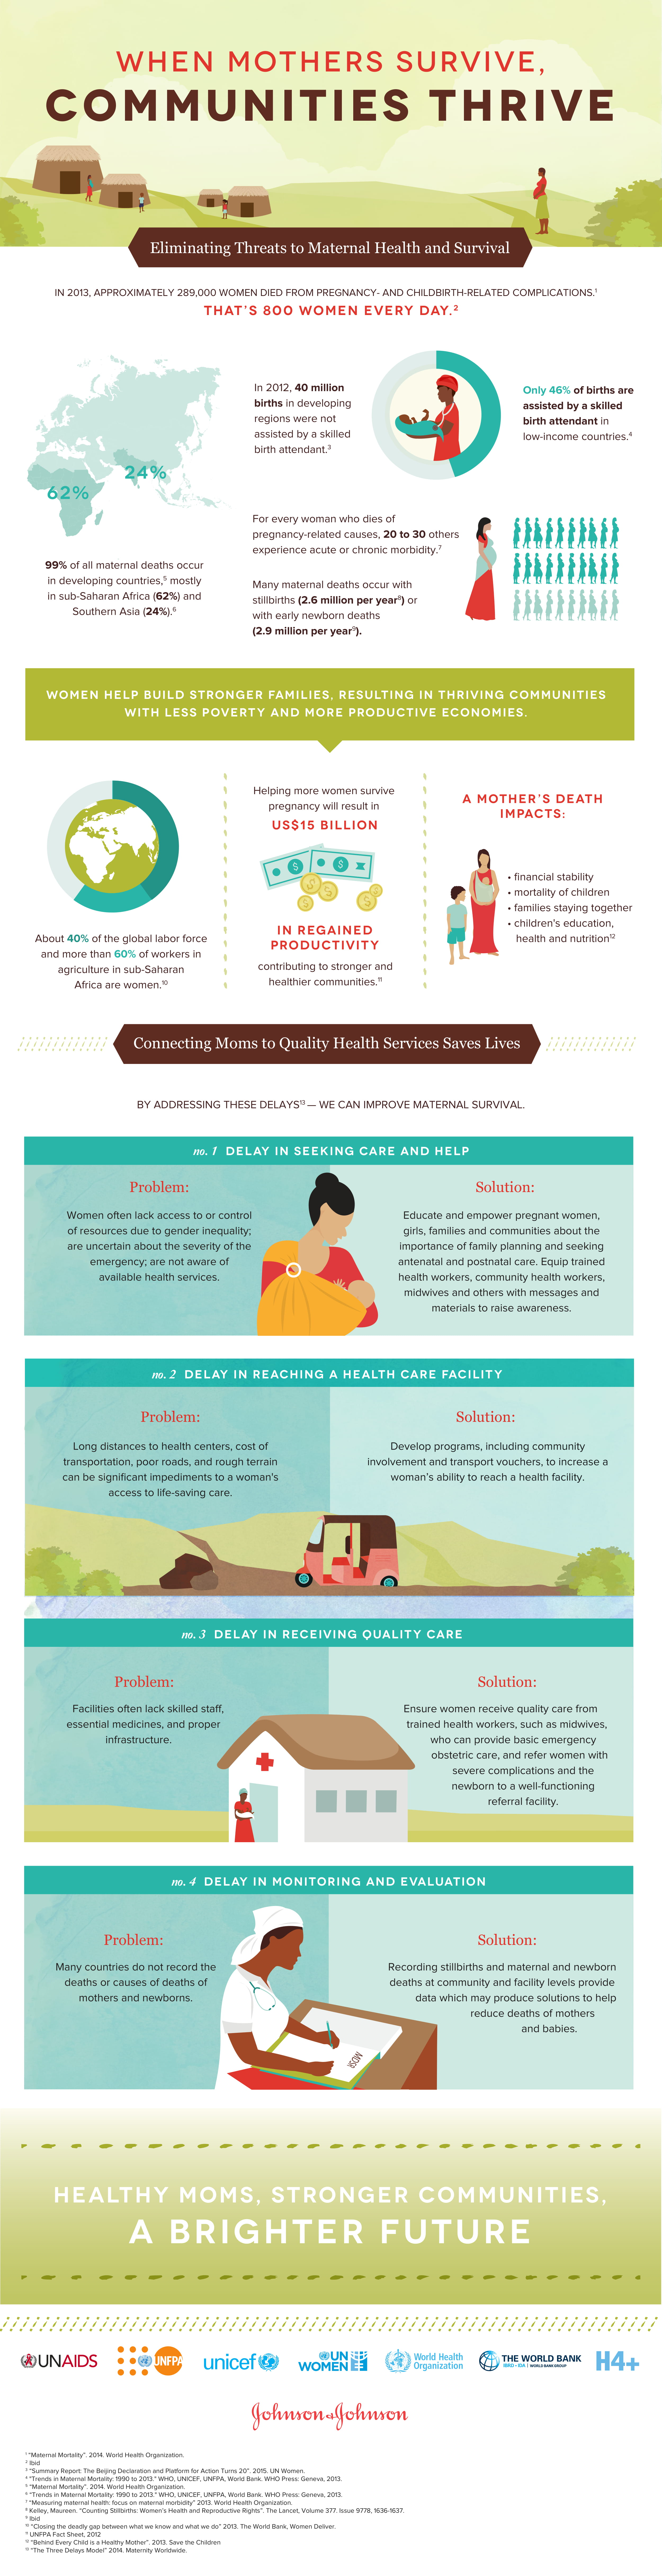 Mothers Define the Future: Why Maternal Health is All-Important - Infographic